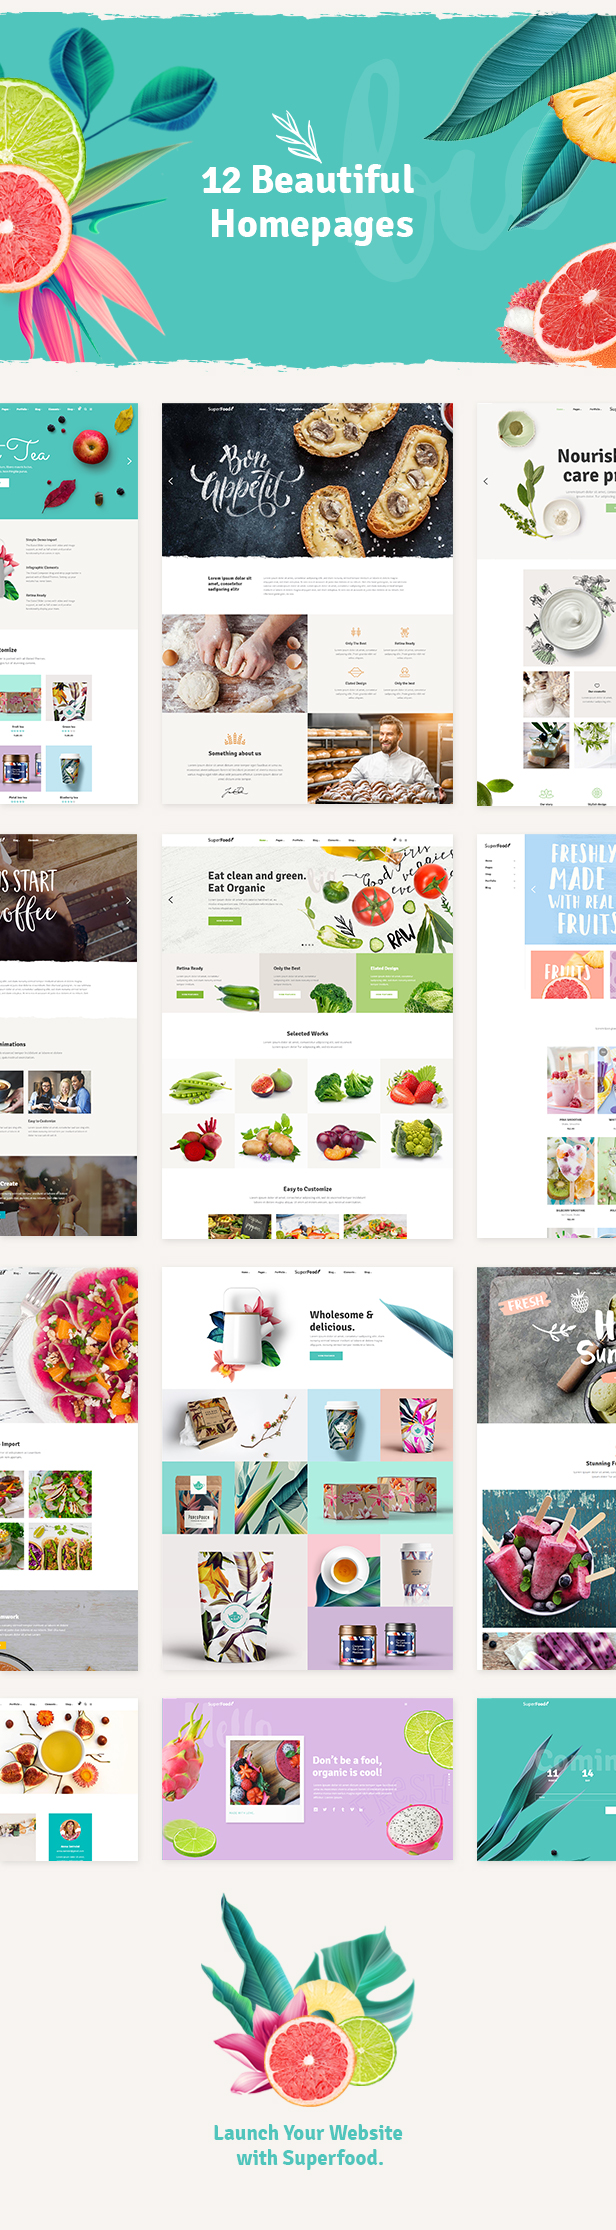 Superfood - Organic Food Products Theme - 1